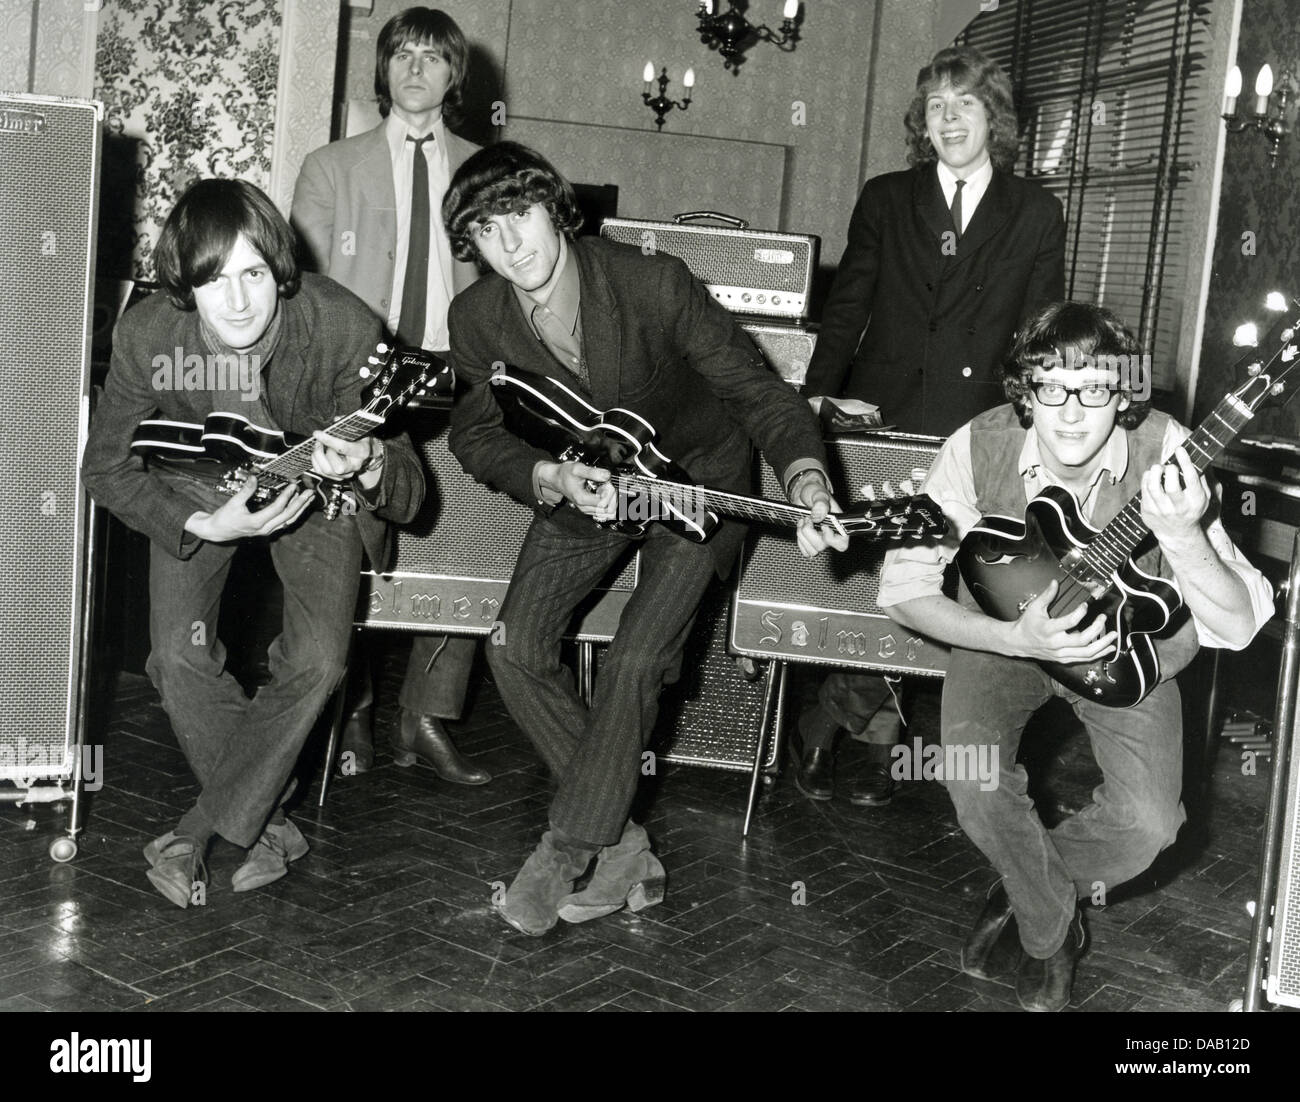 THE FAIRIES UK pop group in September 1964. Photo Tony Gale - Stock Image